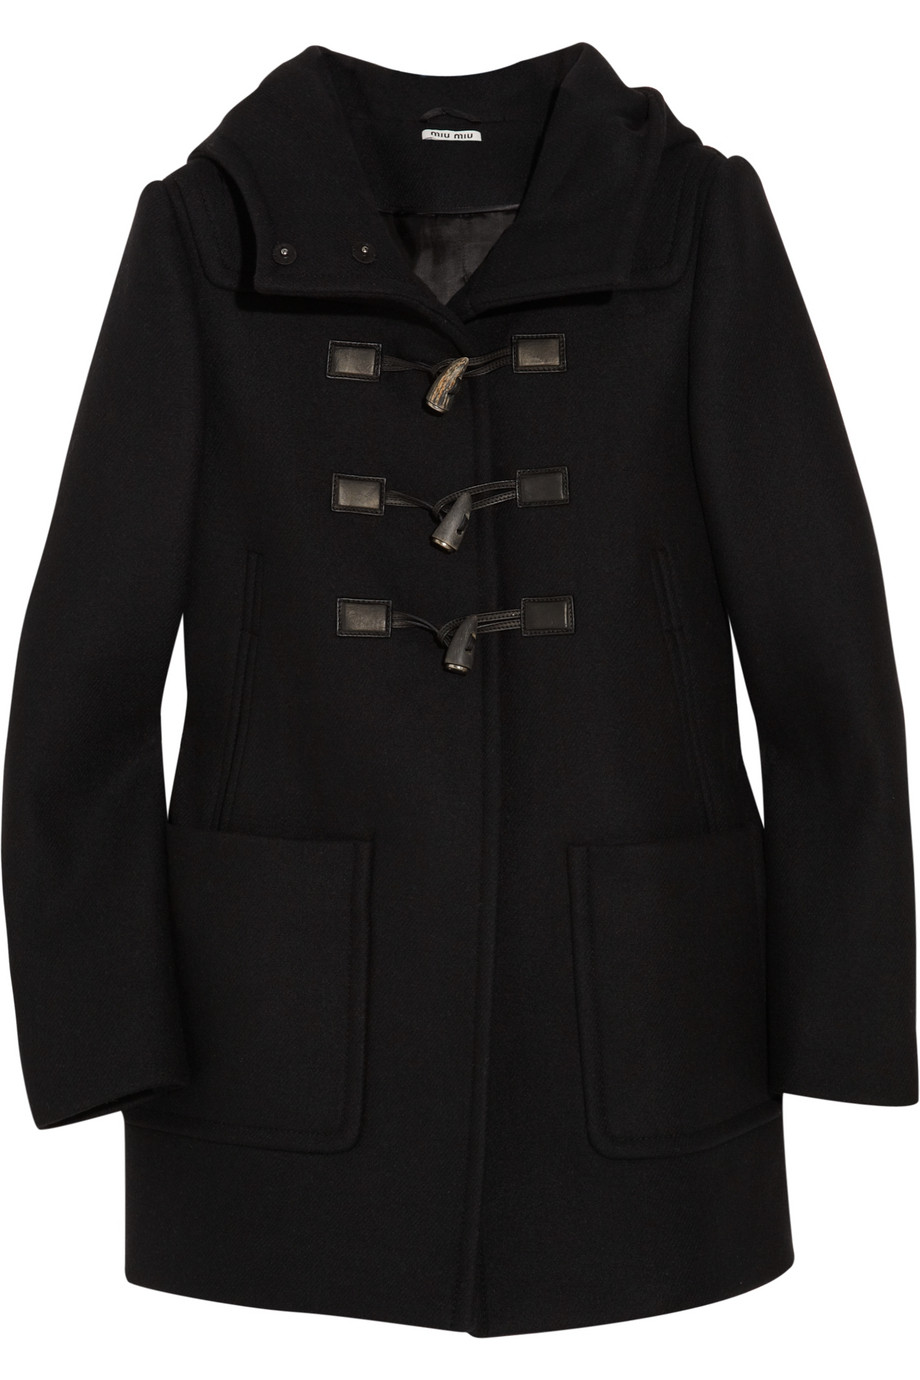 Miu miu Hooded Wool Duffle Coat in Black | Lyst